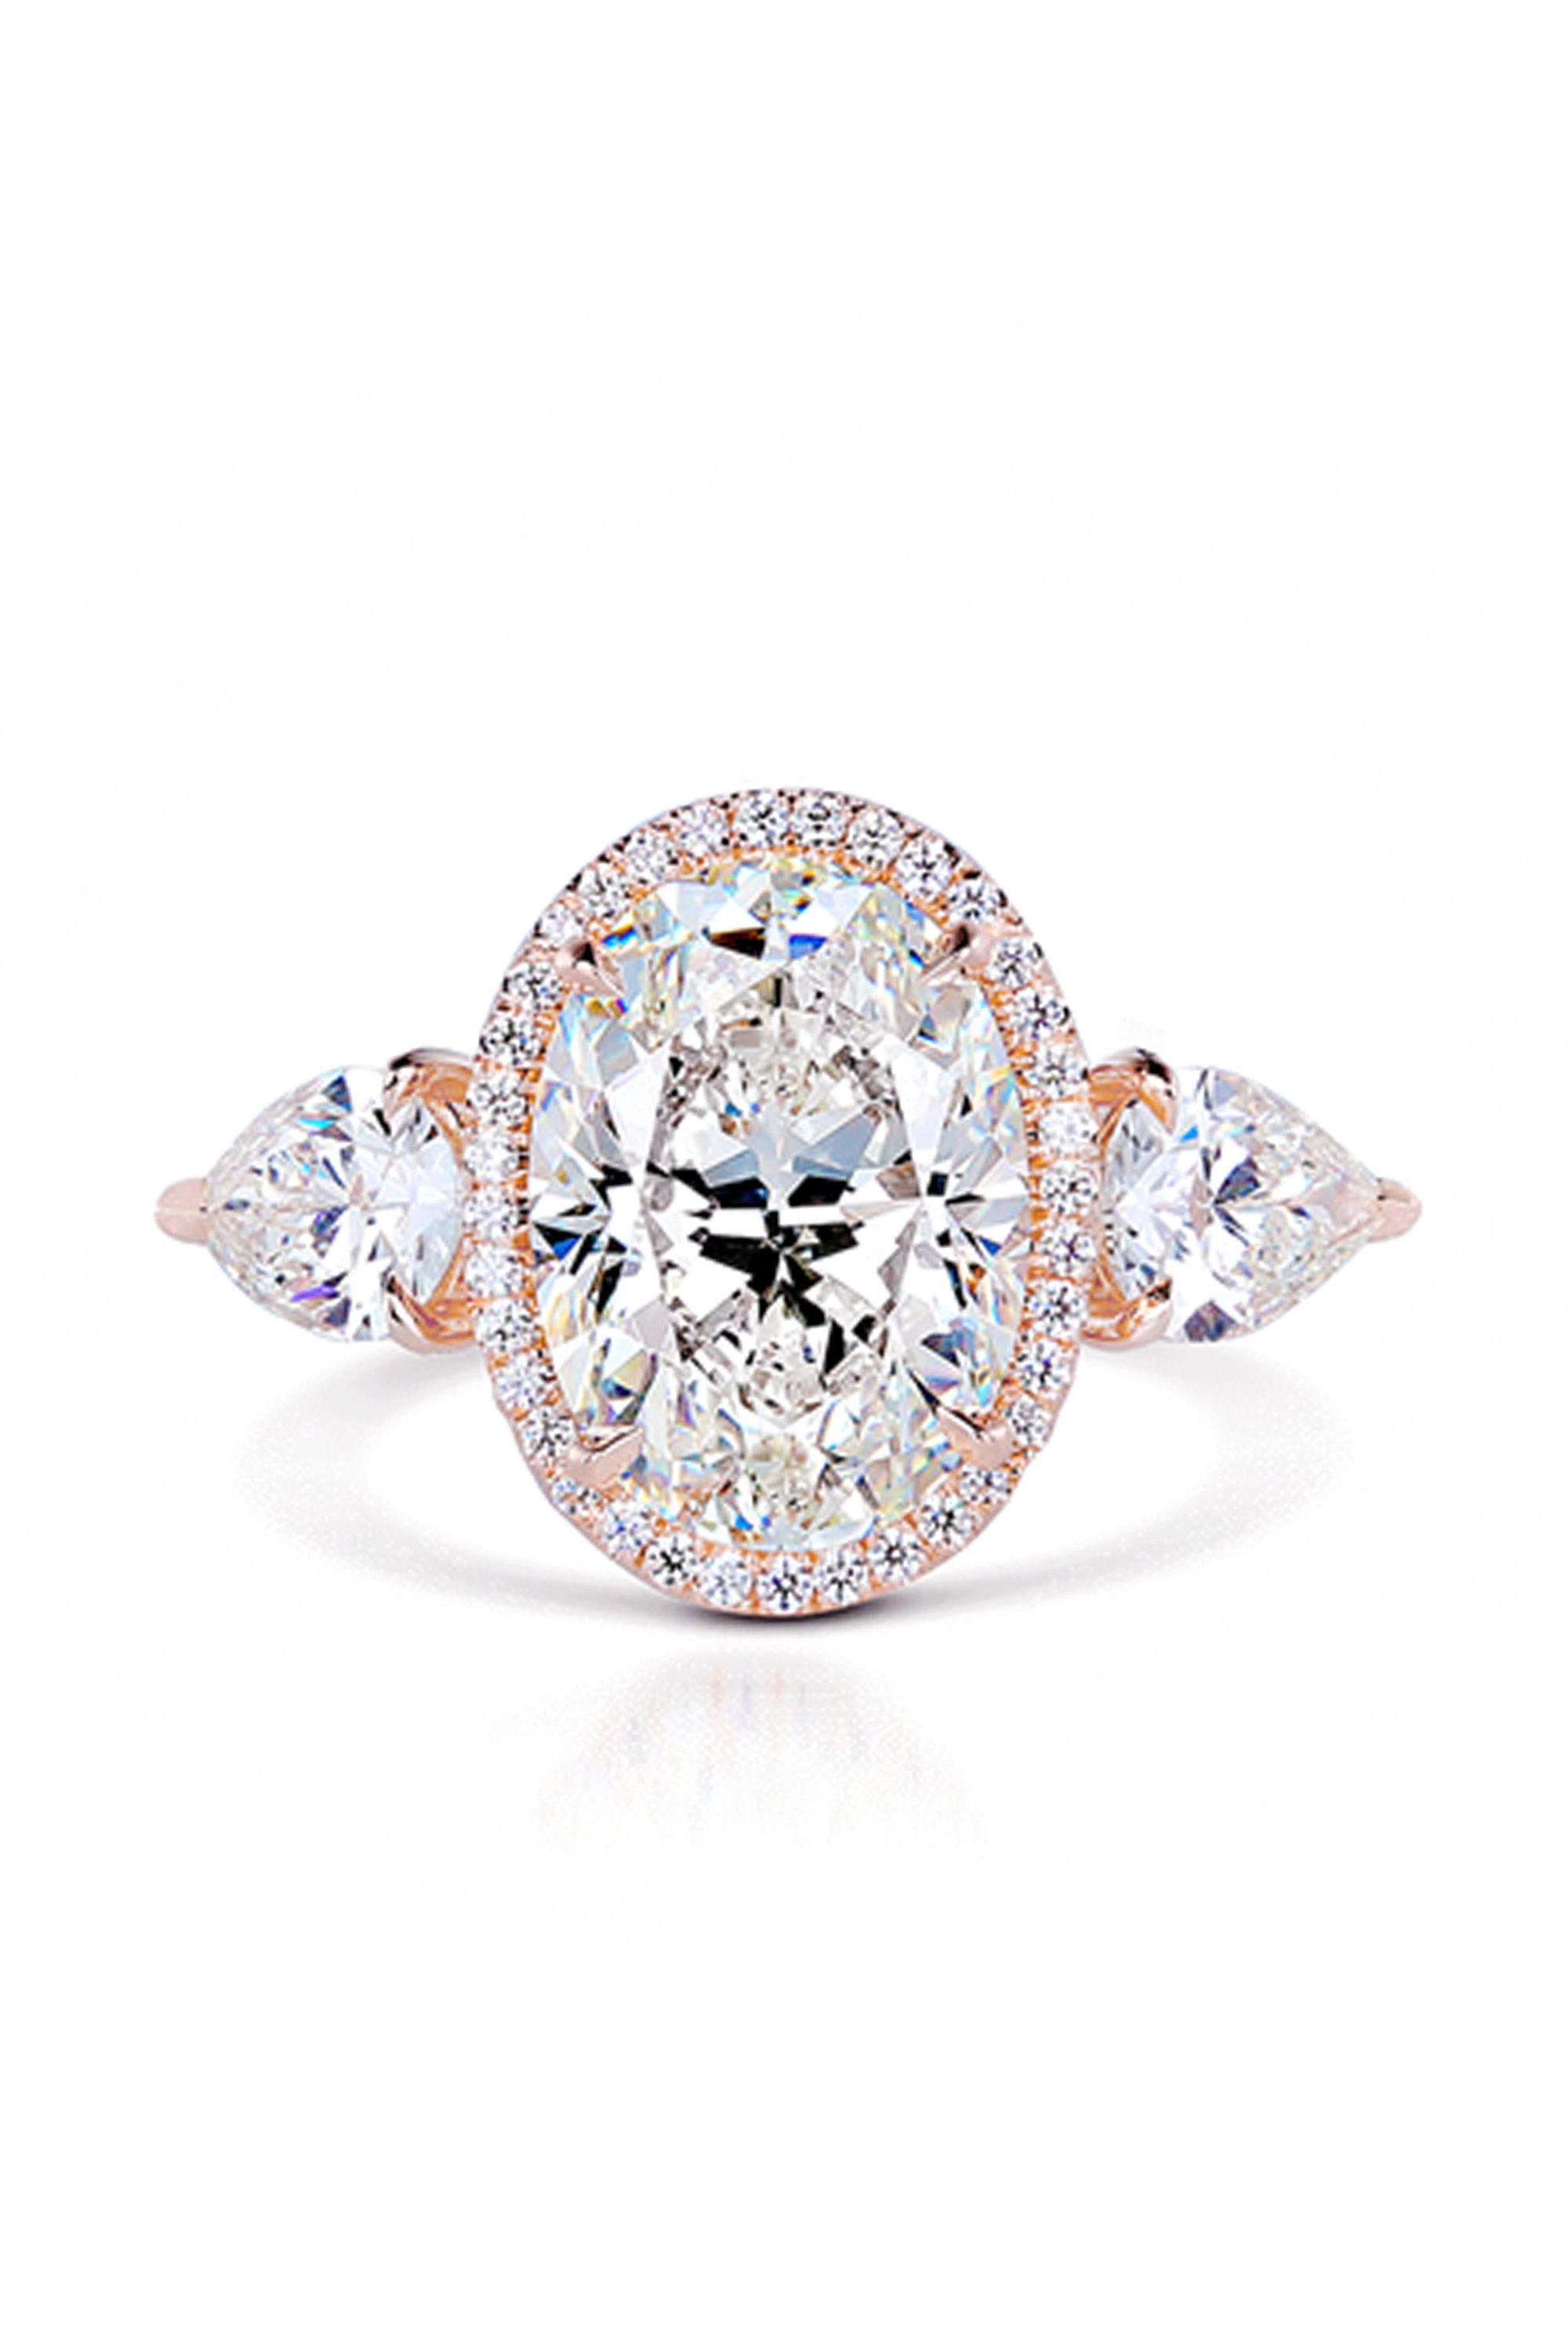 st online store and jewelry gold gems diamond rose rings at ring tacori stores martin dk simply engagement best product